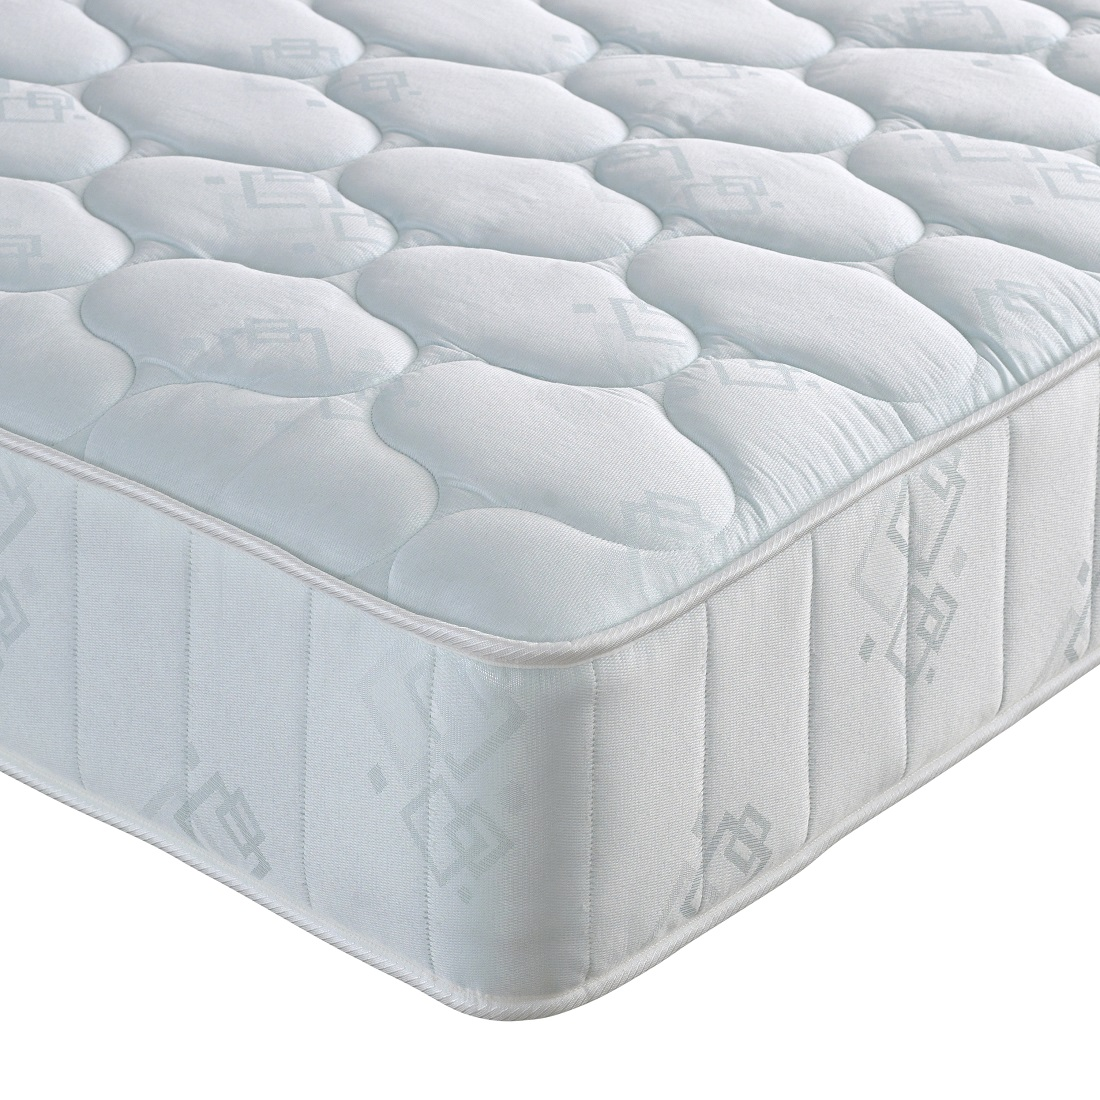 2ft6 Small Single Size Empire Orthopaedic Firm Mattress 2